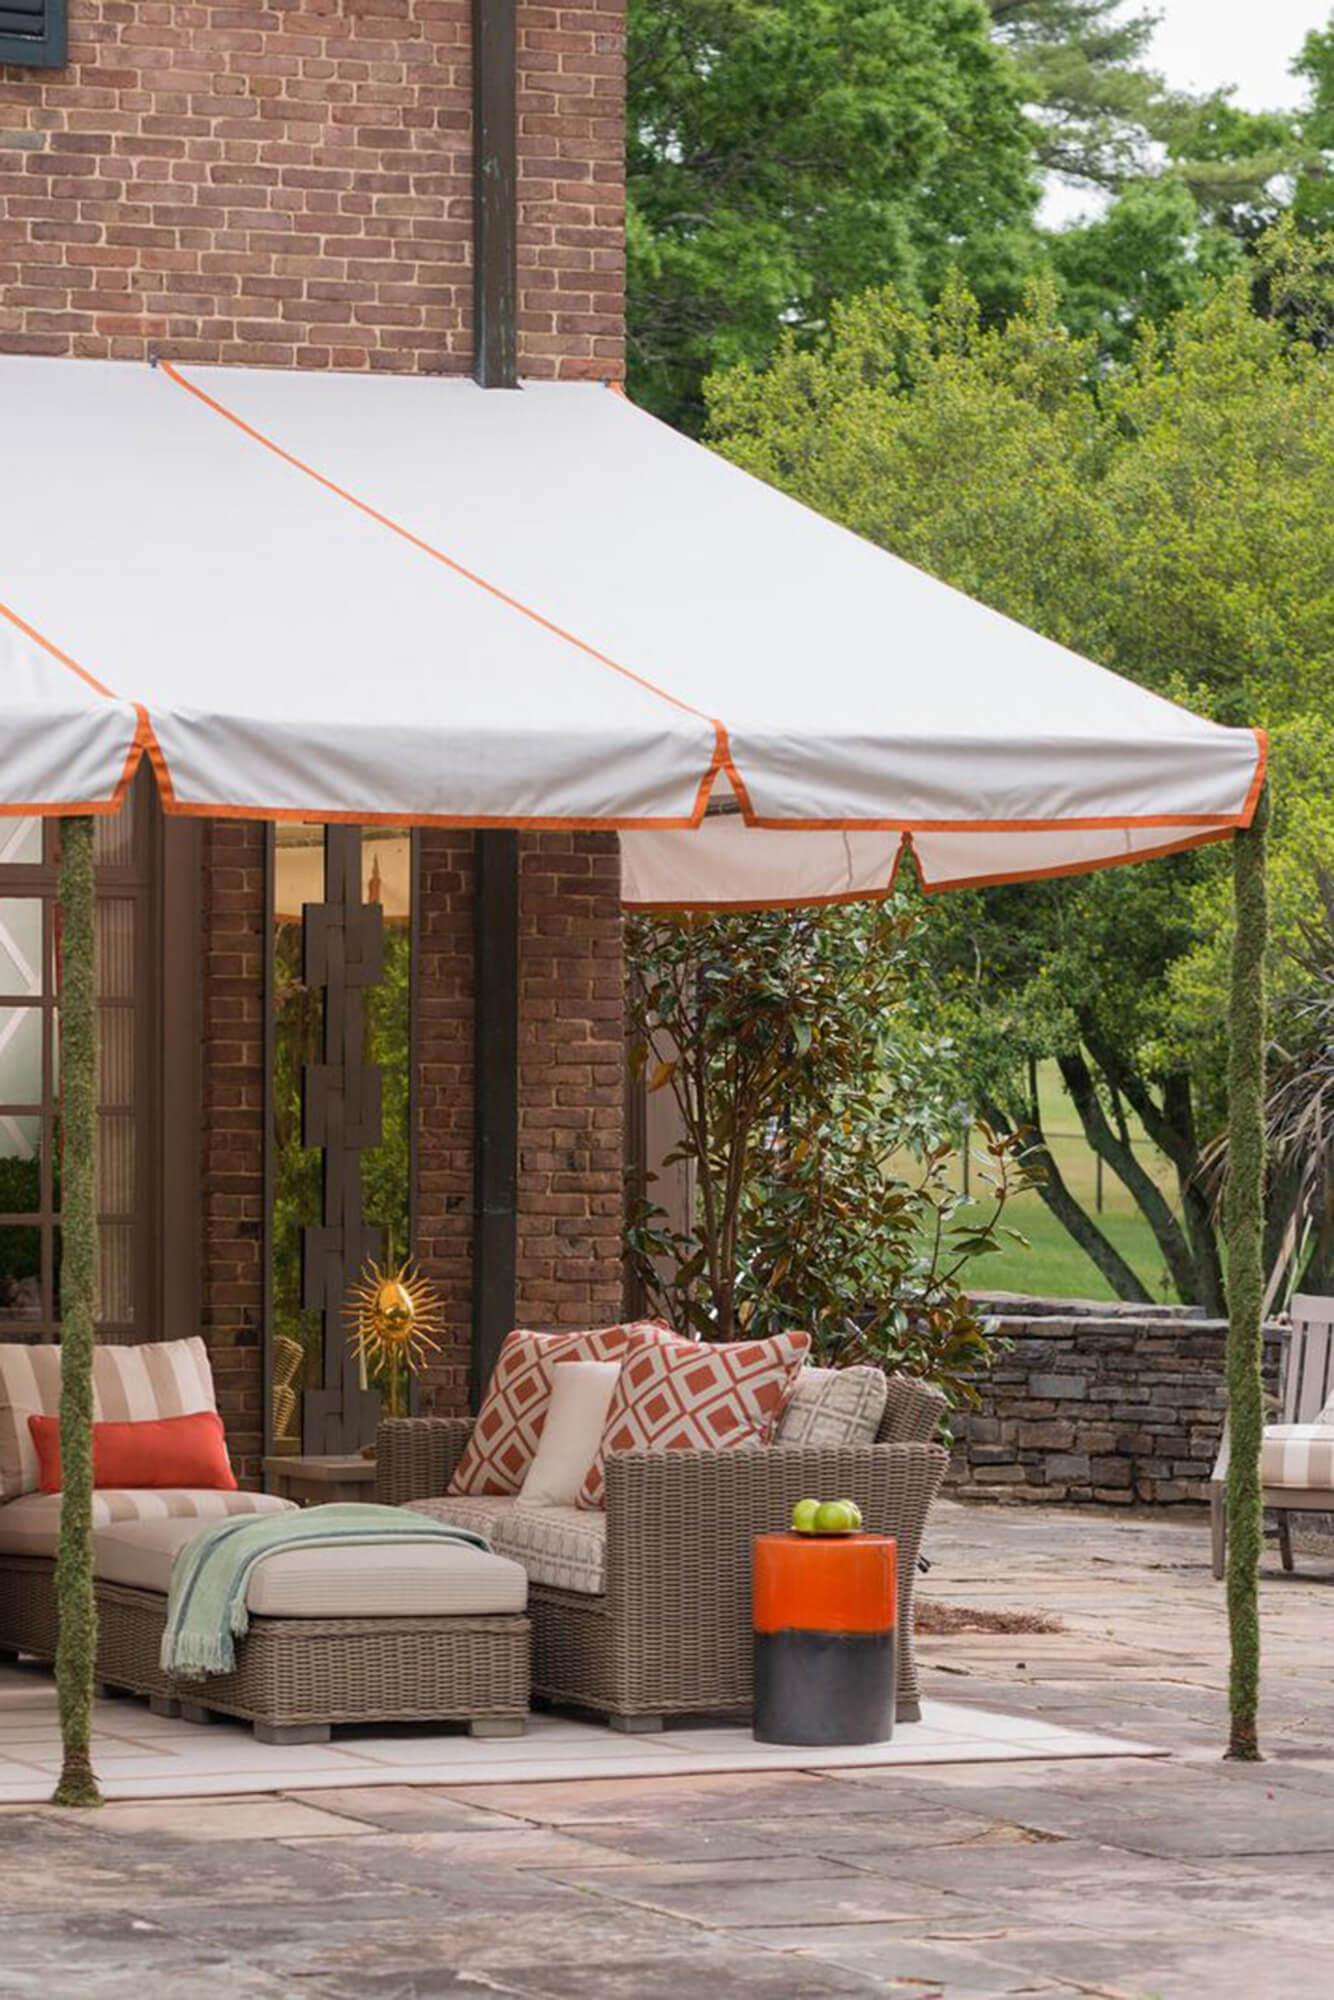 Patio Coved With A Fixed Frame Awning White Sunbrella Fabric And Orange Detailing